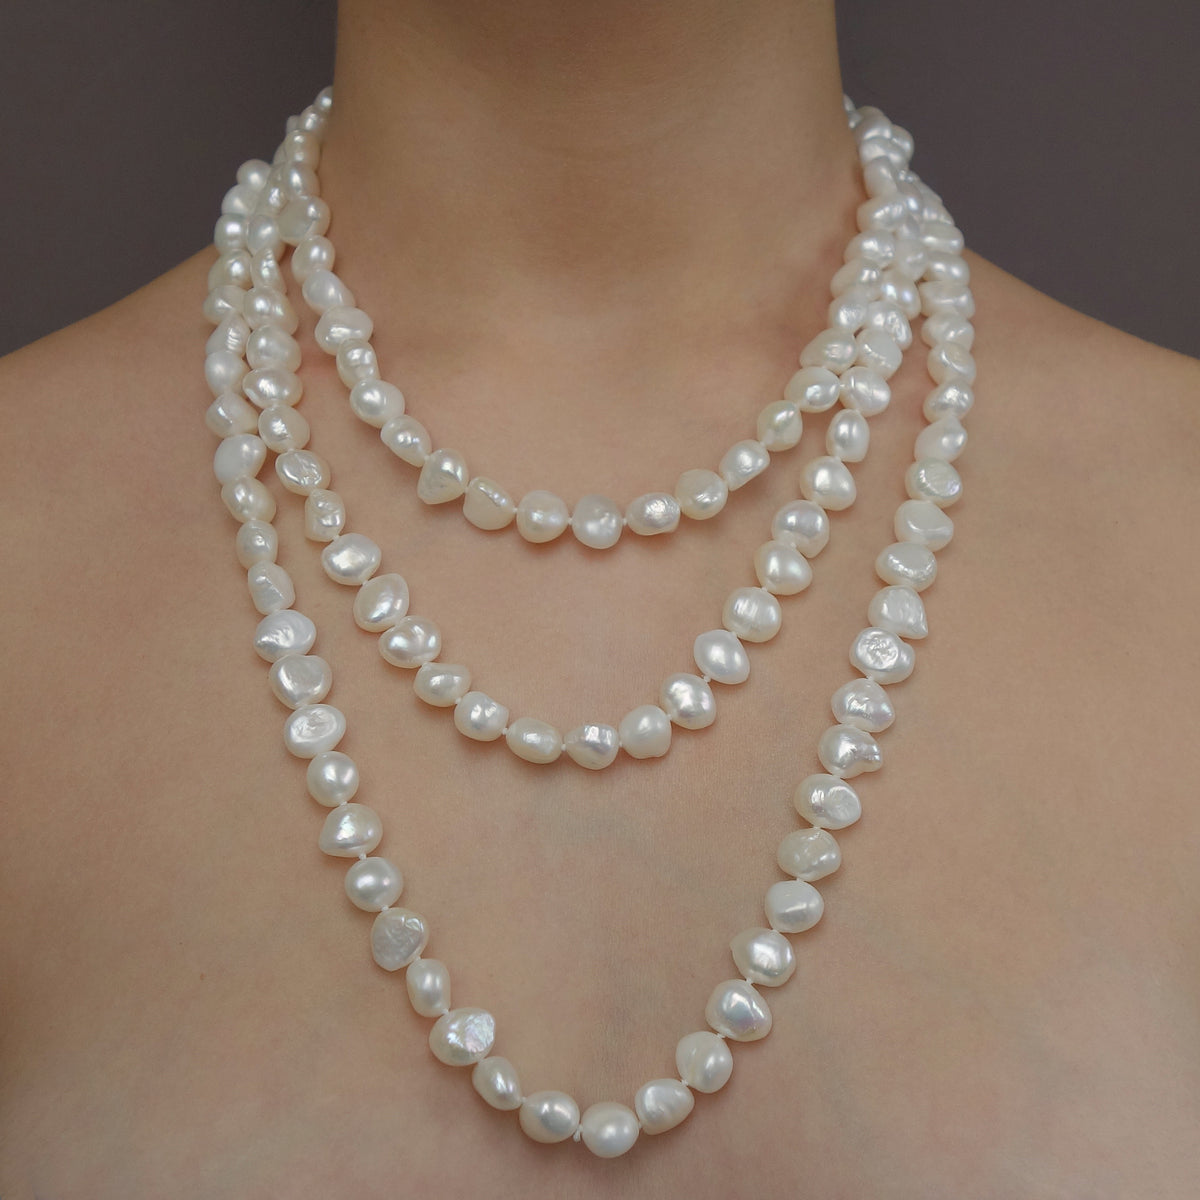 Coco Chanel says YES to the pearls